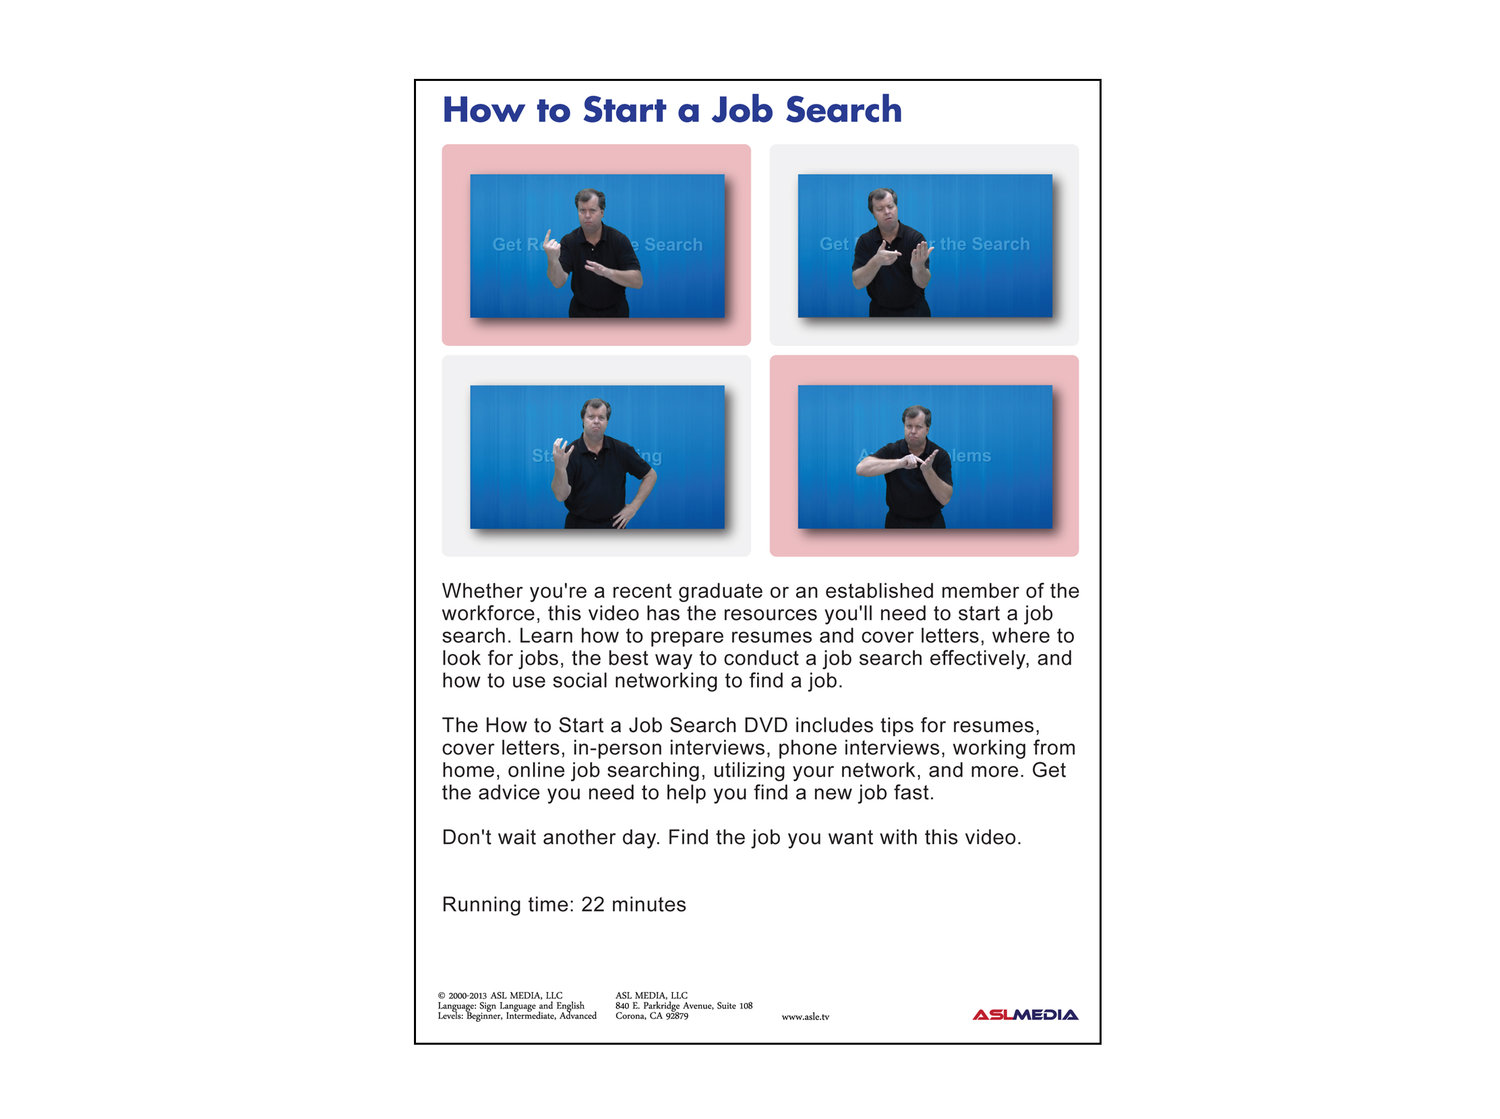 Job Success: How to Start a Job Search - DVD (First Version) — ASL MEDIA